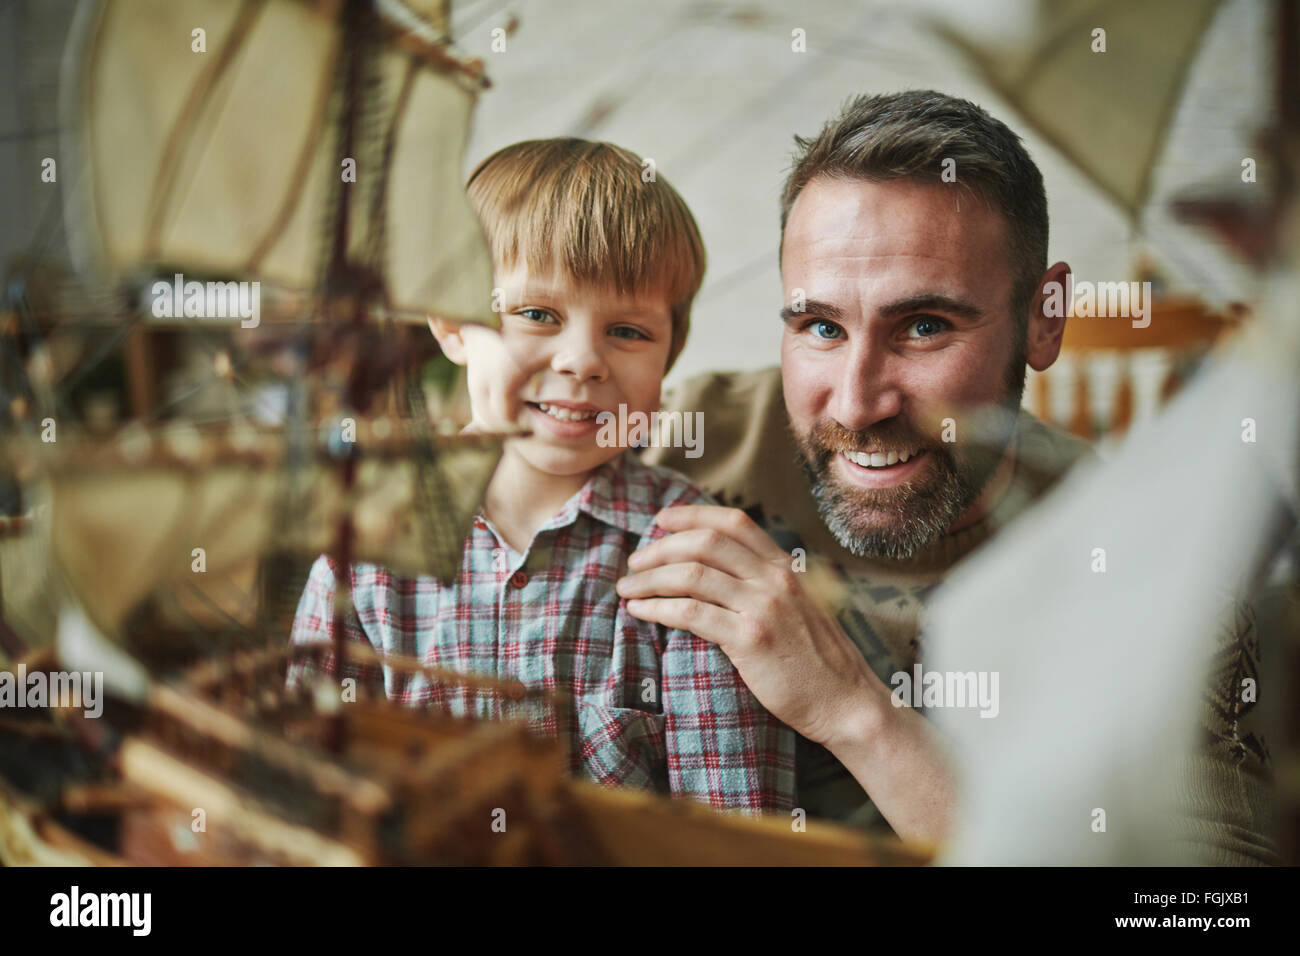 Little boy and his father looking at camera with smiles - Stock Image